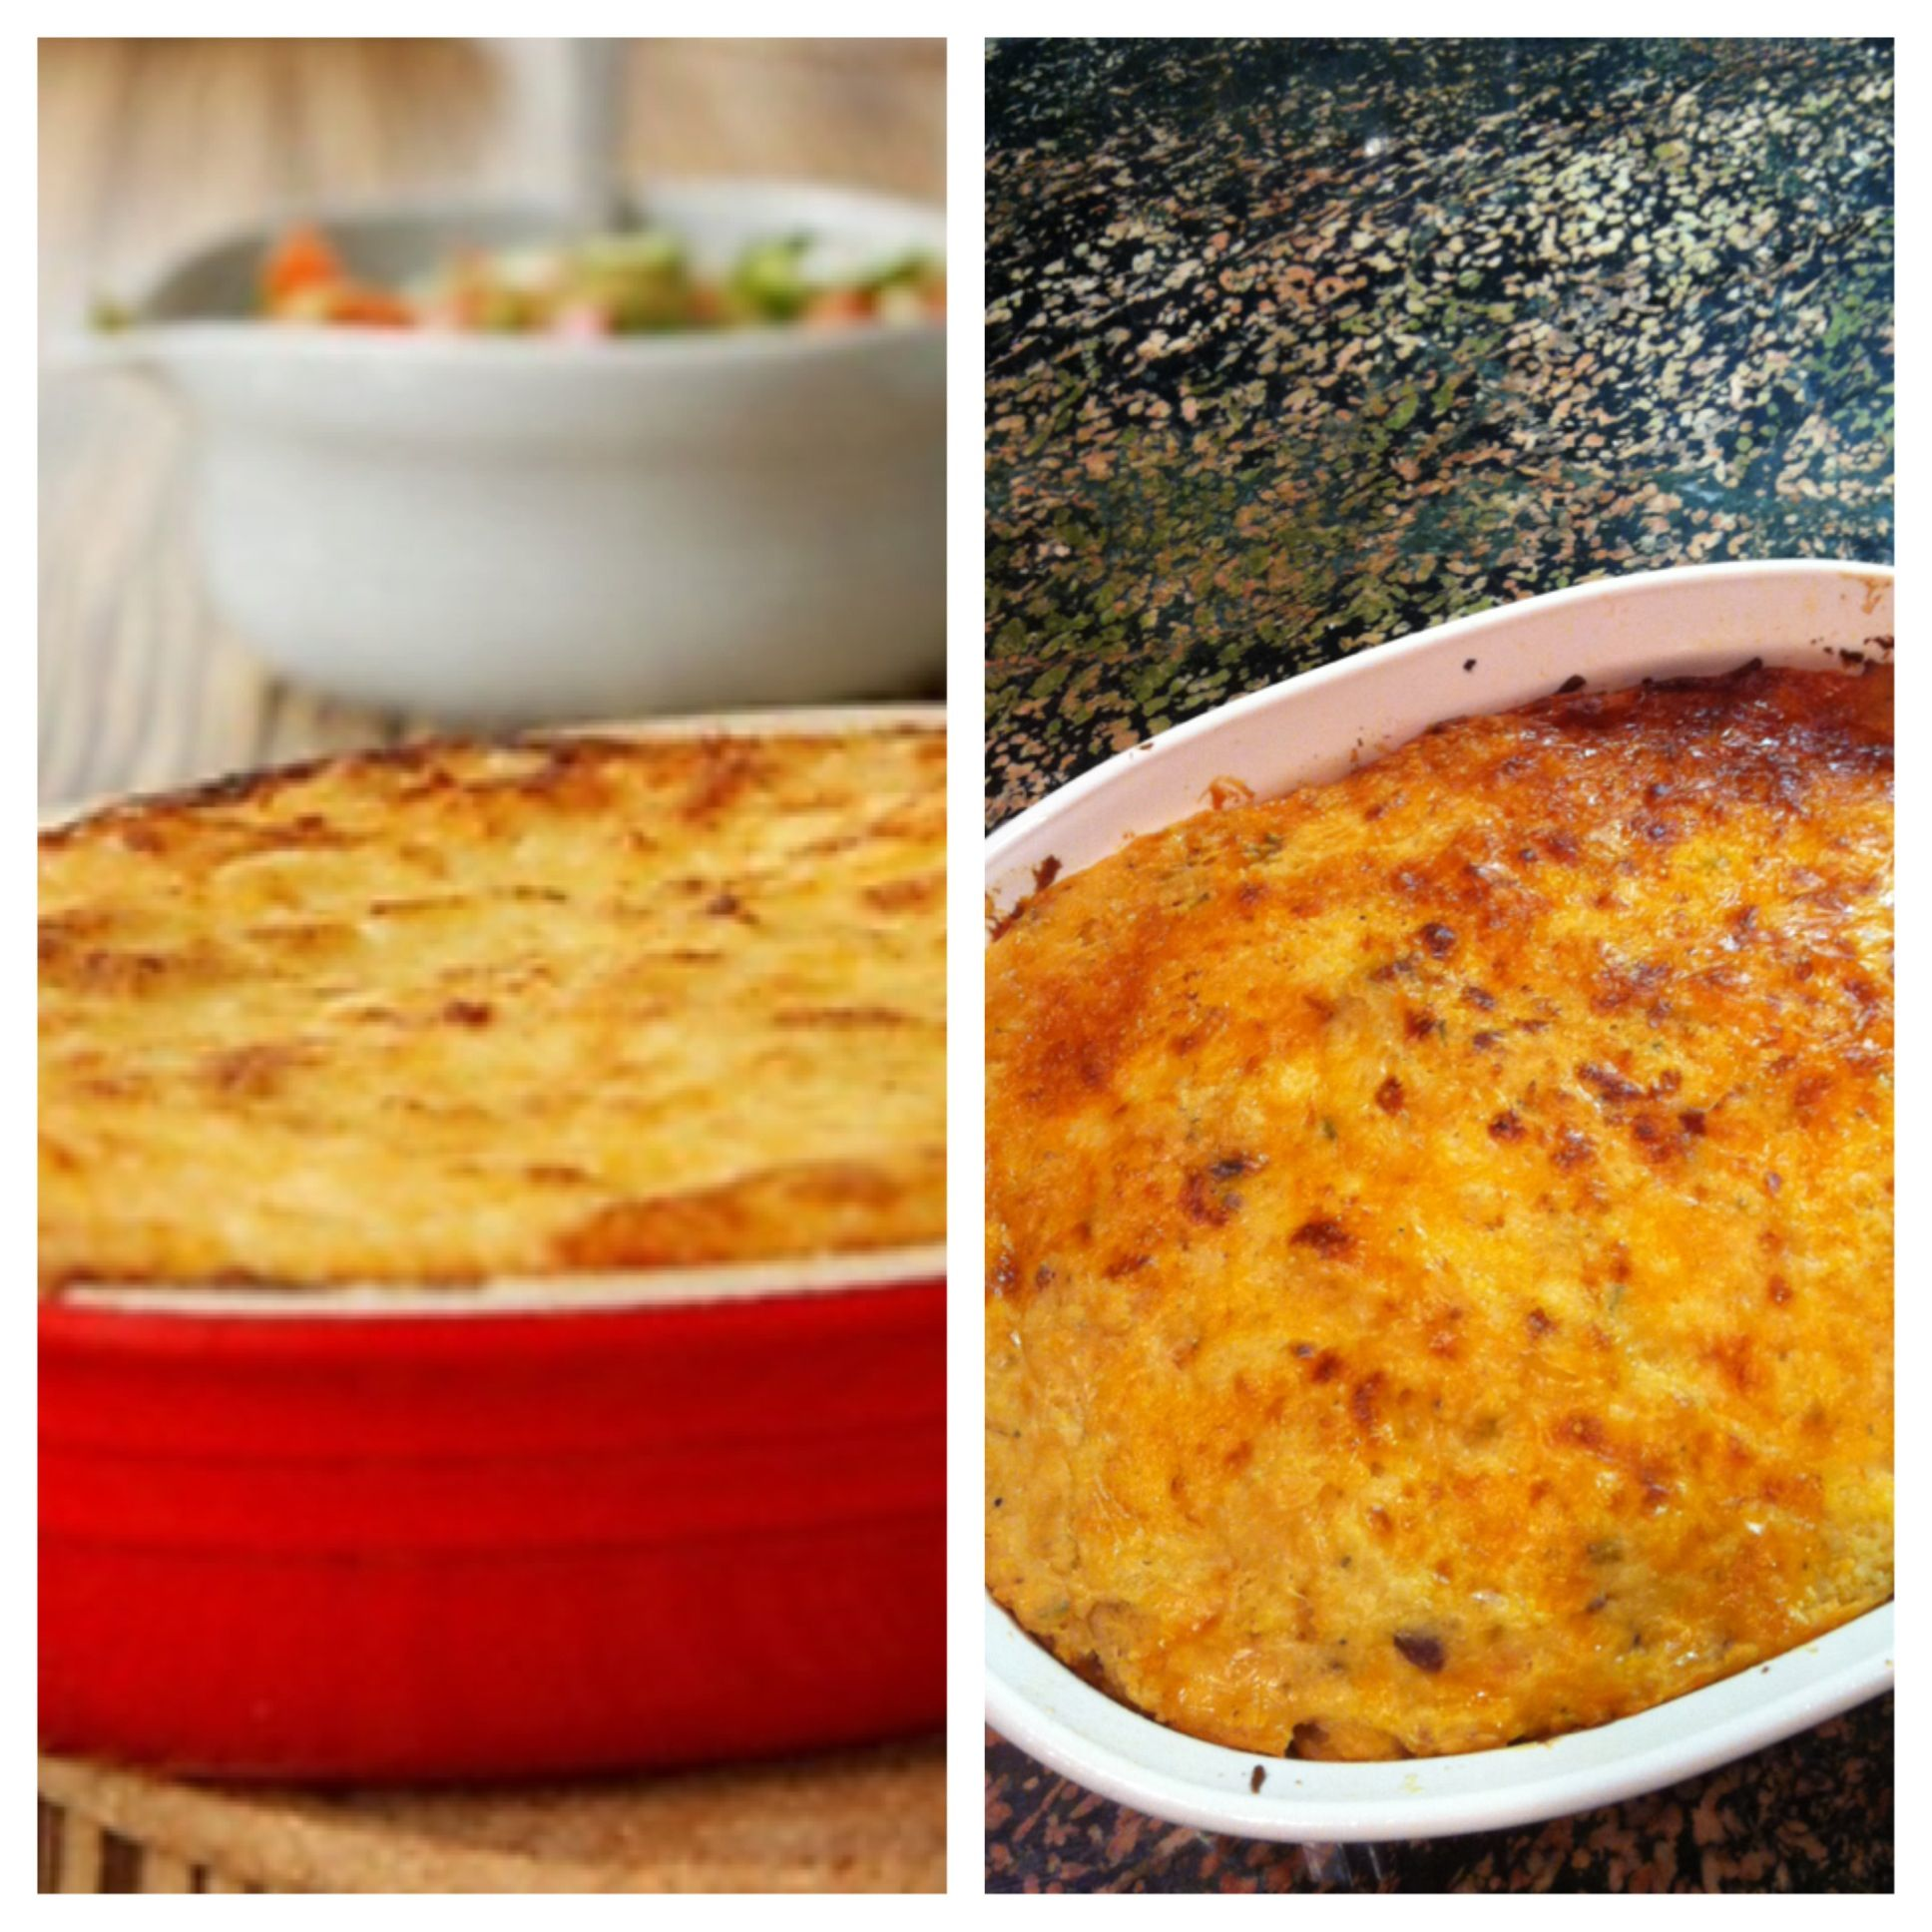 Pin by Adrienne Alexis on Pinterest vs. My Kitchen Skills | Pinterest